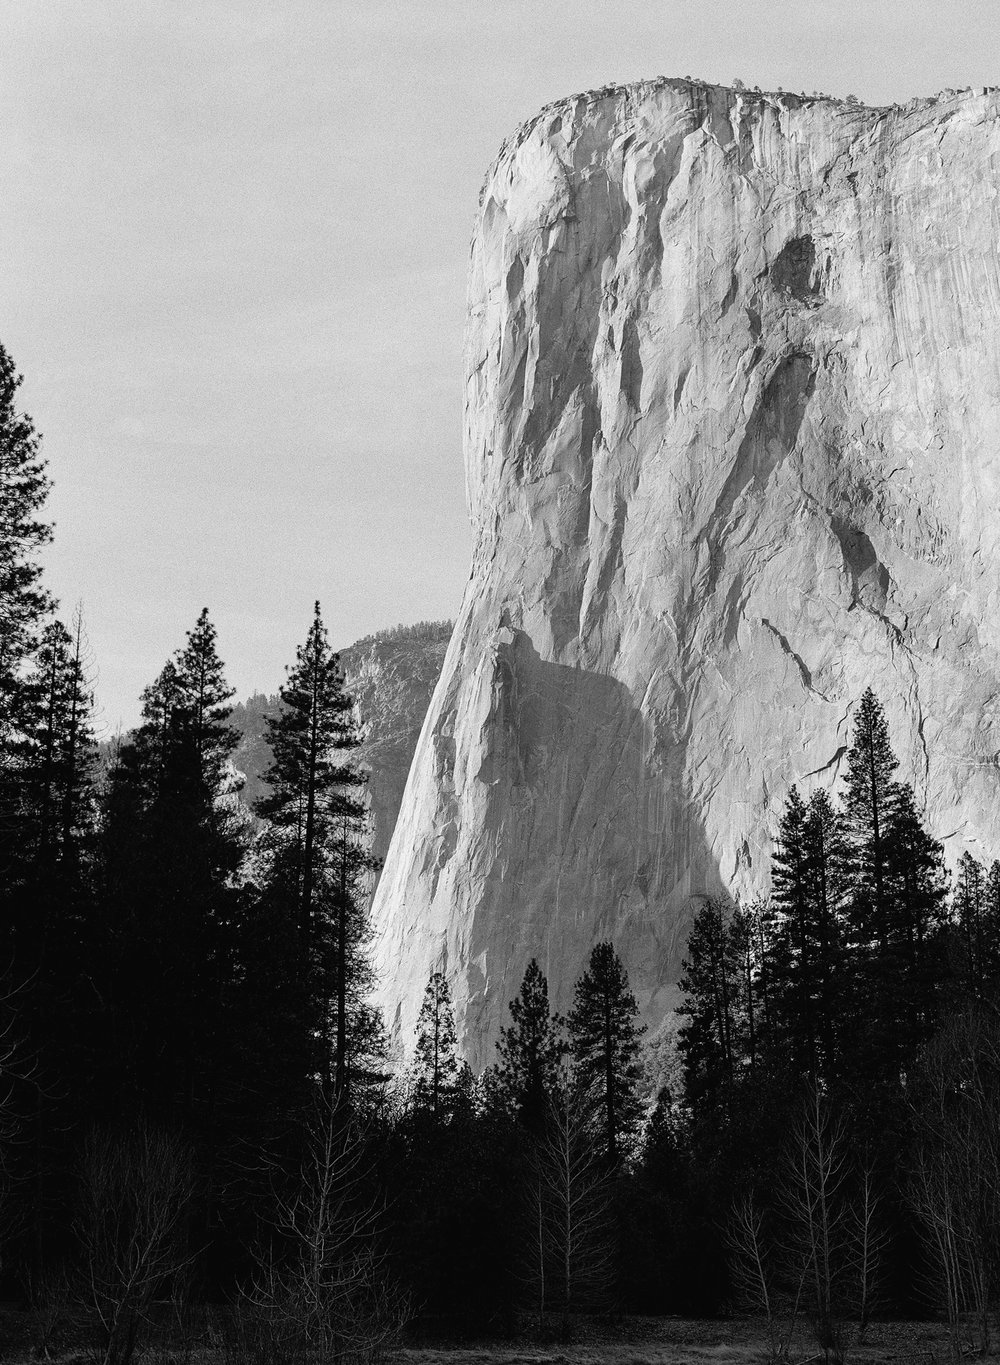 El Capitan, Yosemite Valley